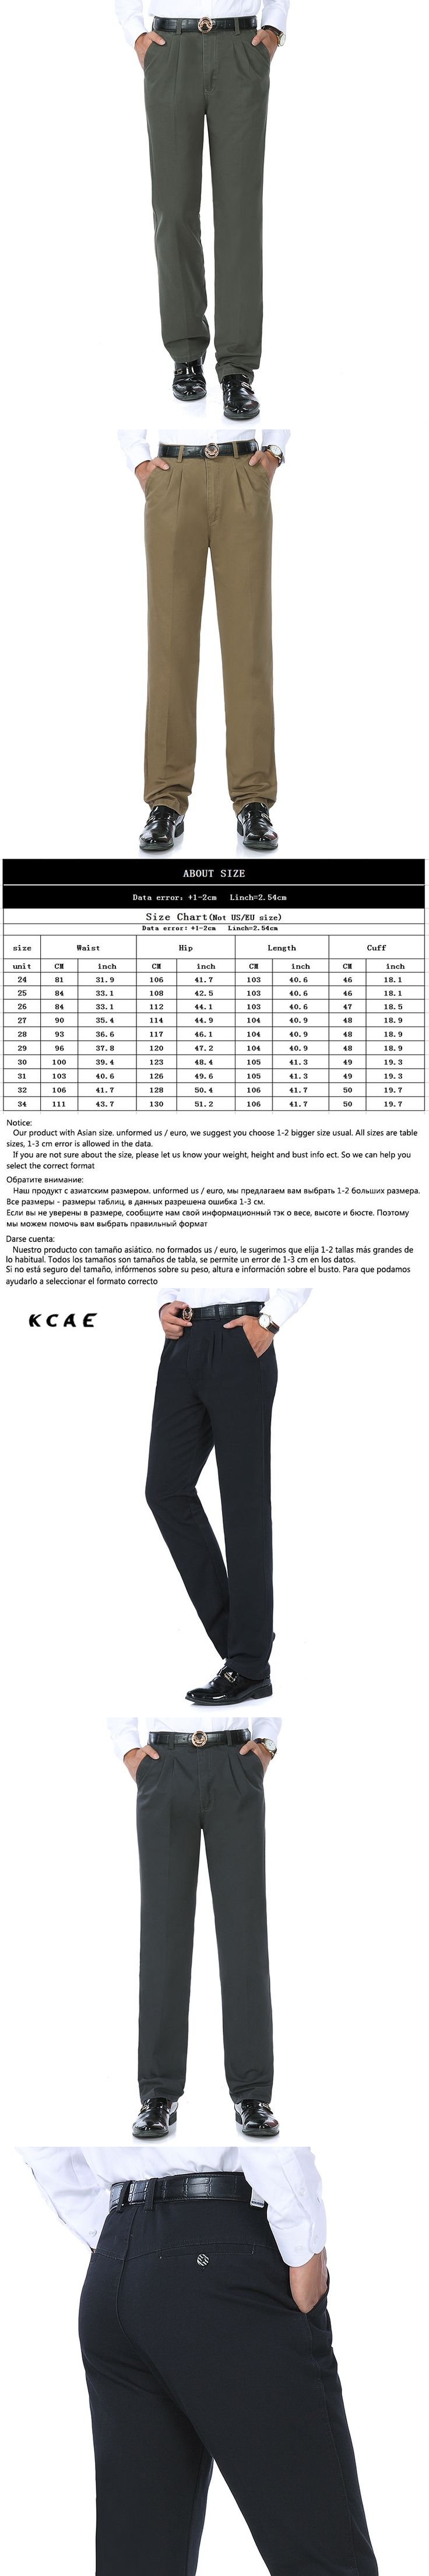 Autumn and winter cotton slacks in the elderly men 's long - sleeved cotton long pants business men straight trousers Size 32 34